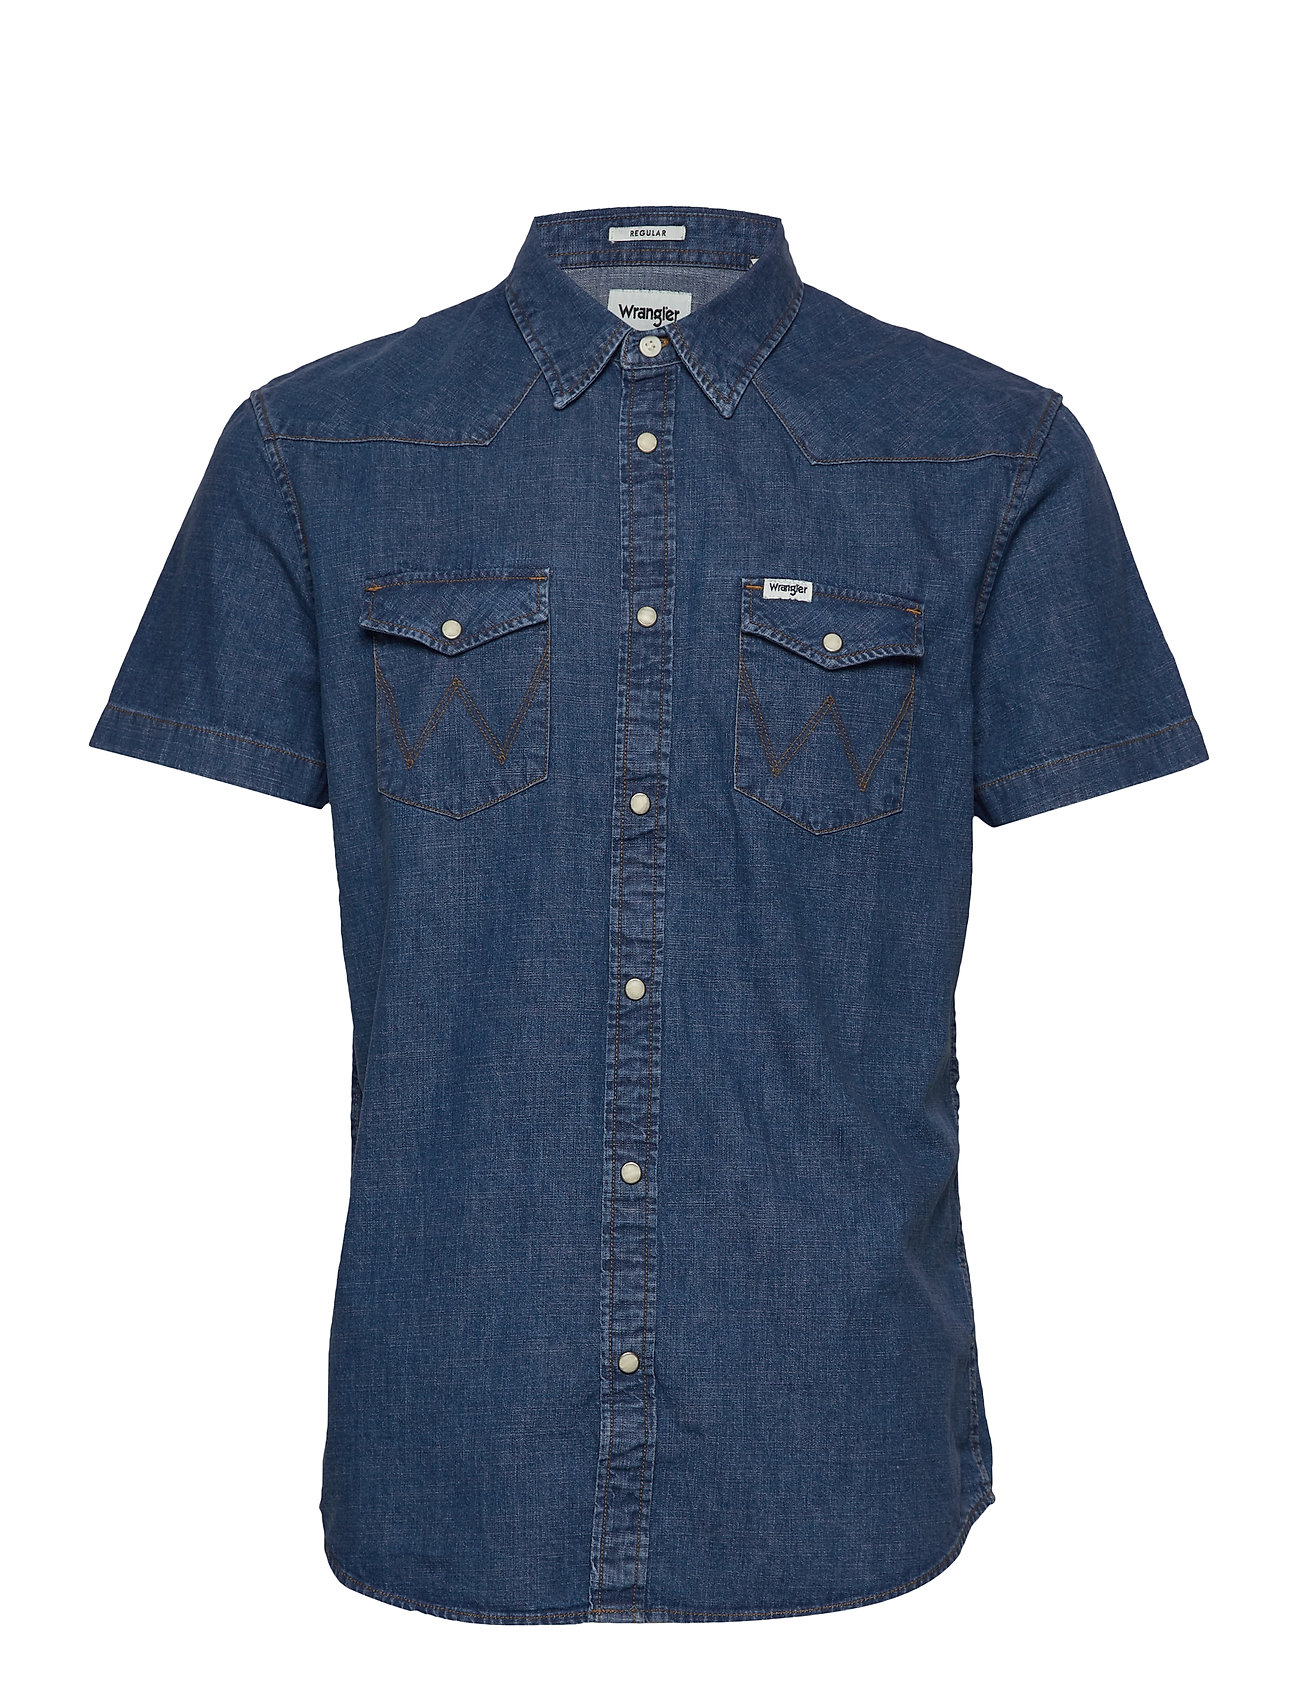 Wrangler SS WESTERN SHIRT - RED FLAME